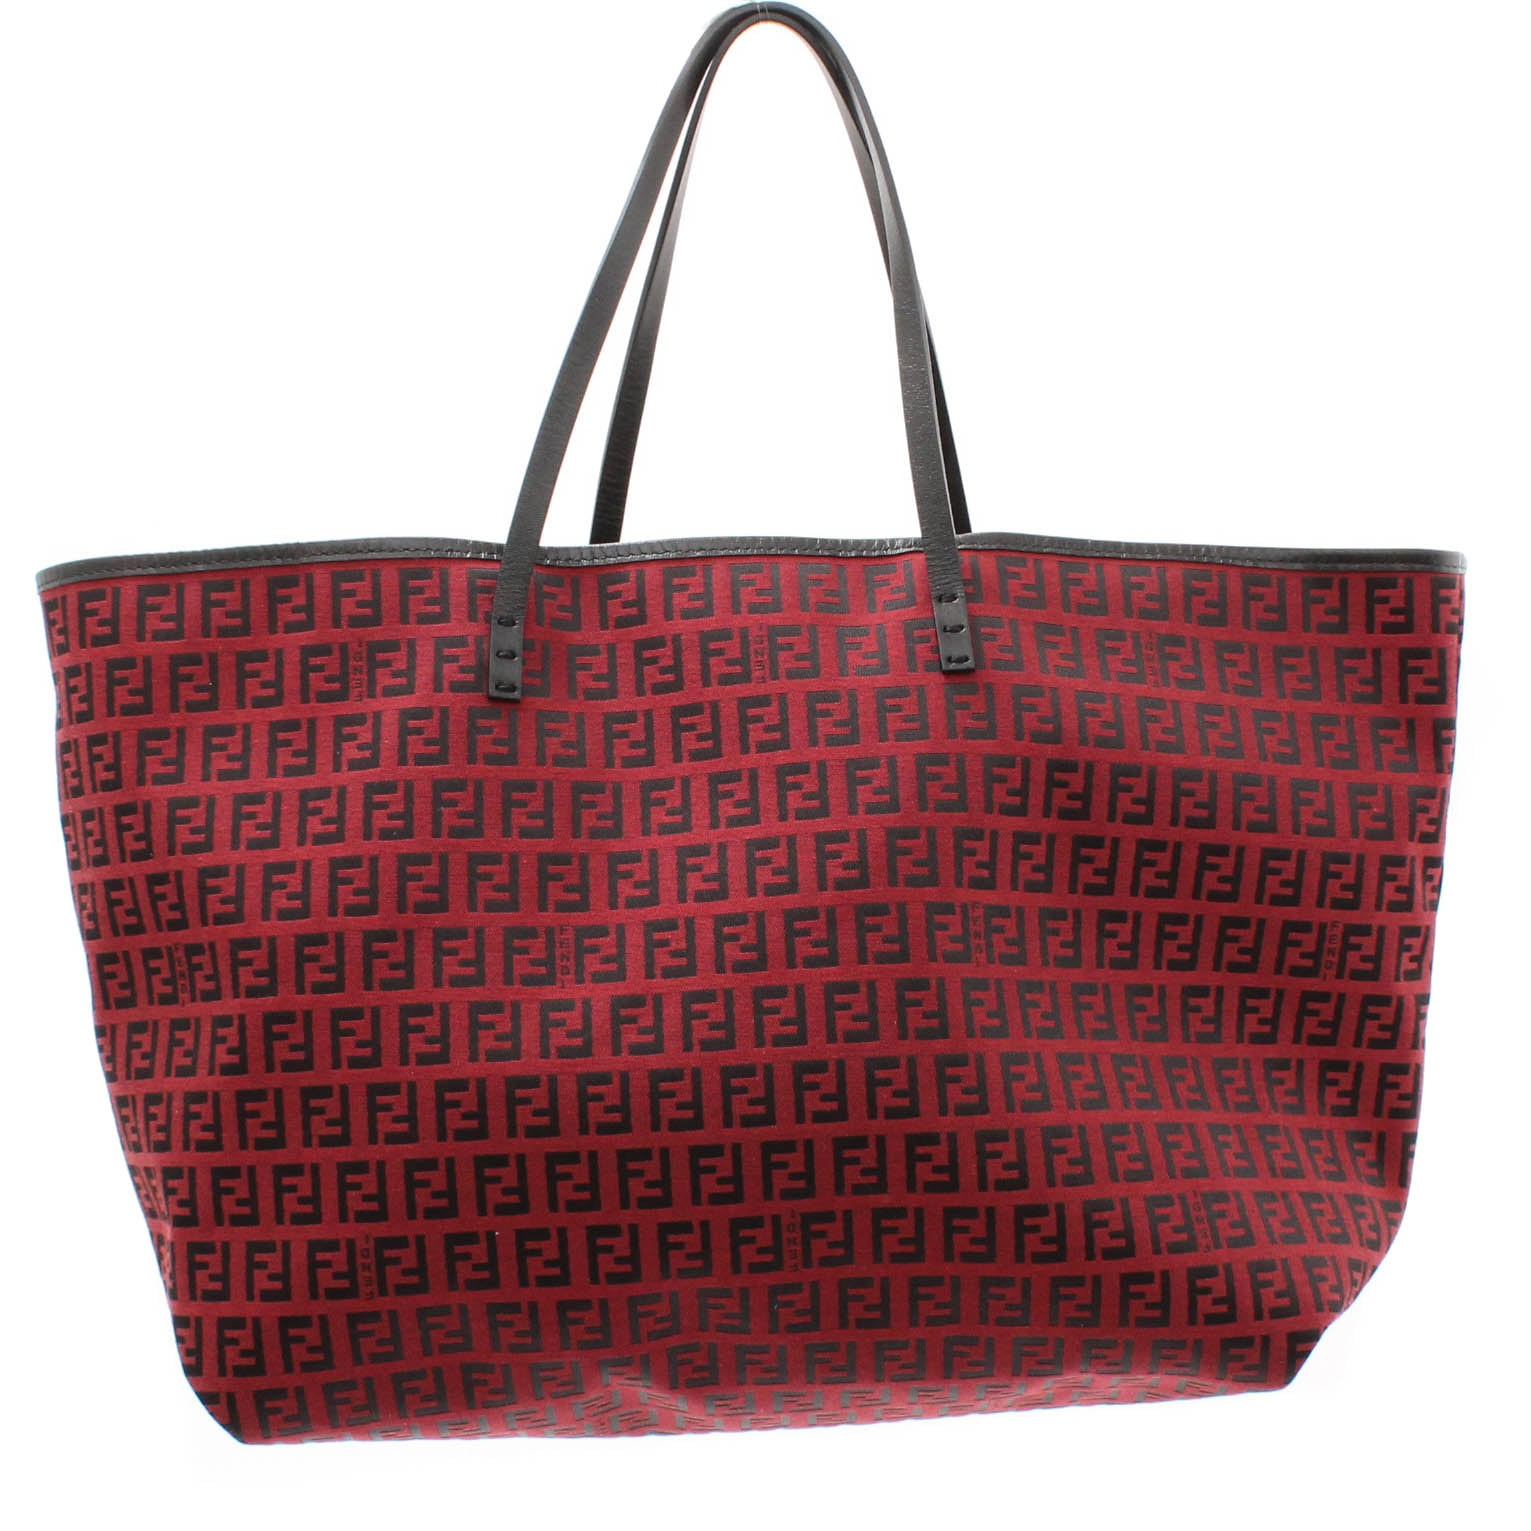 Fendi Zucca Red and Black Canvas and Leather Tote